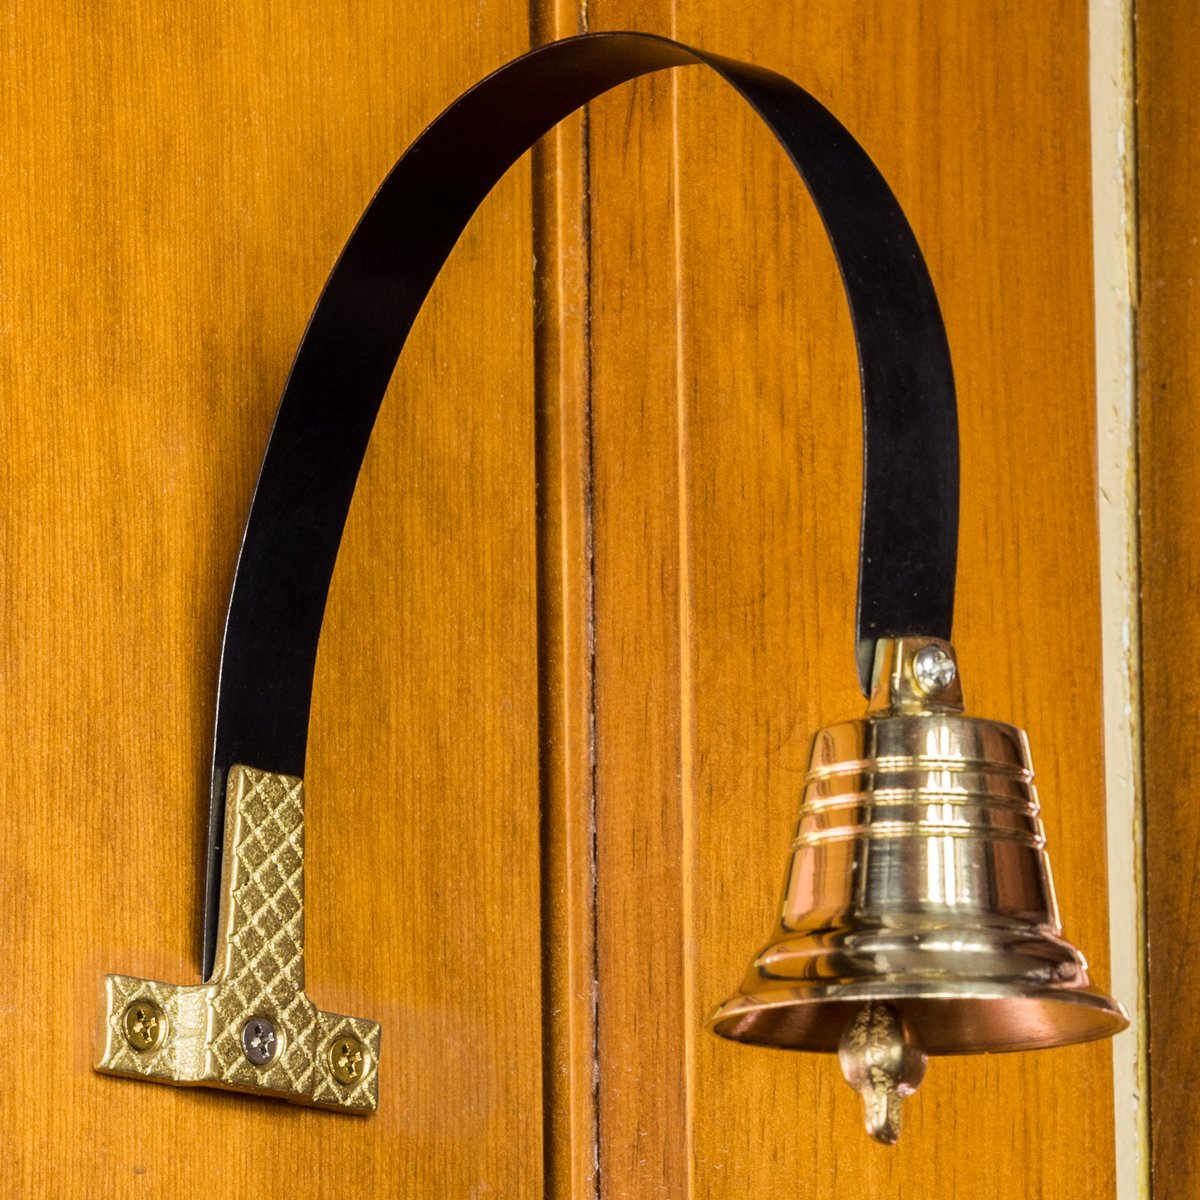 Dog Doorbell - GoGo Bell Deluxe with Solid Brass Bell For Loud Clear Tone by Dog Doorbell (Image #4)